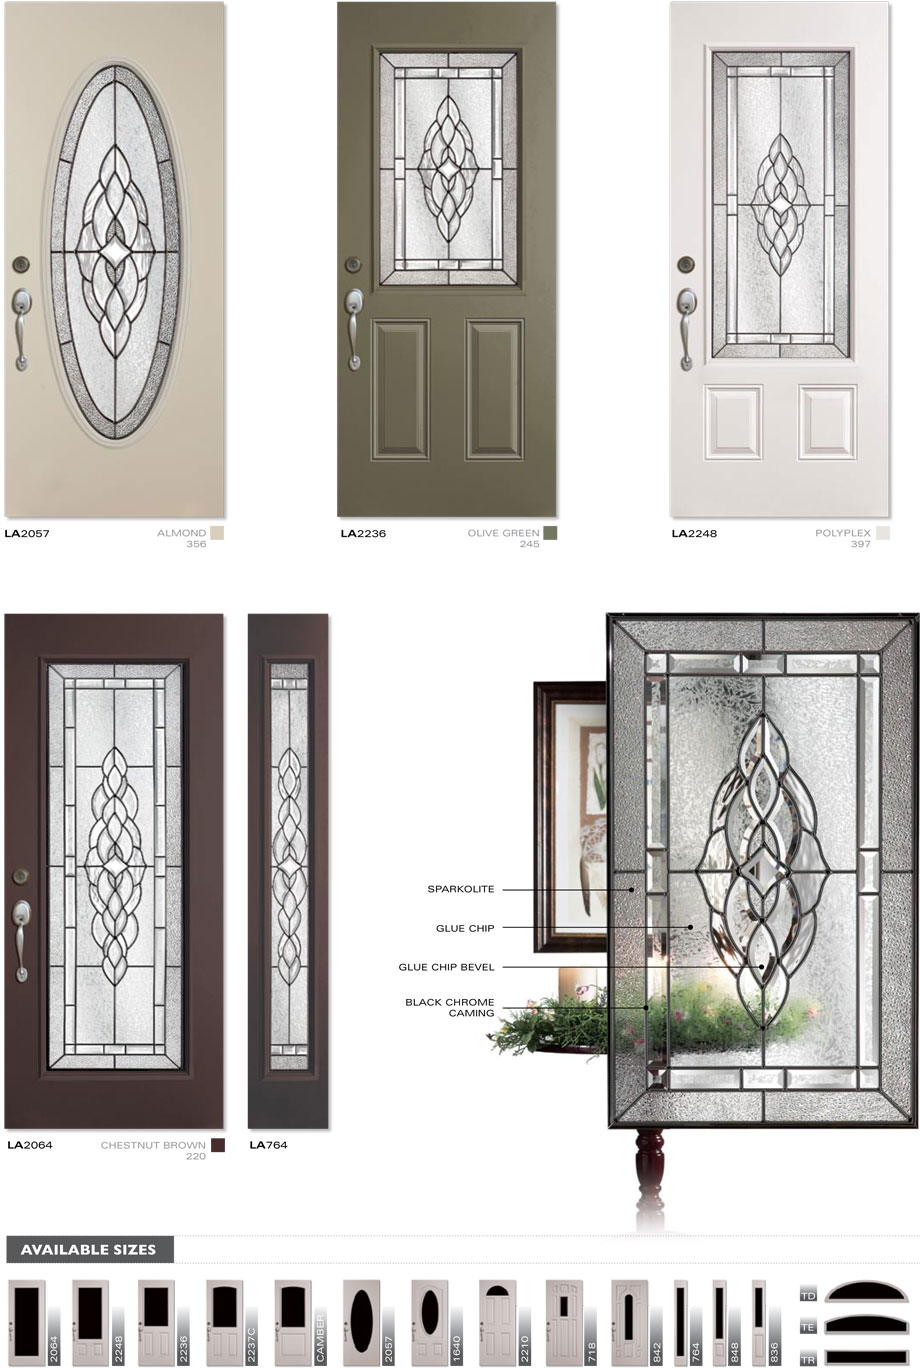 Dorplex Langley Entry Door & Entry Doors Steel Doors Paito Doors Windsor